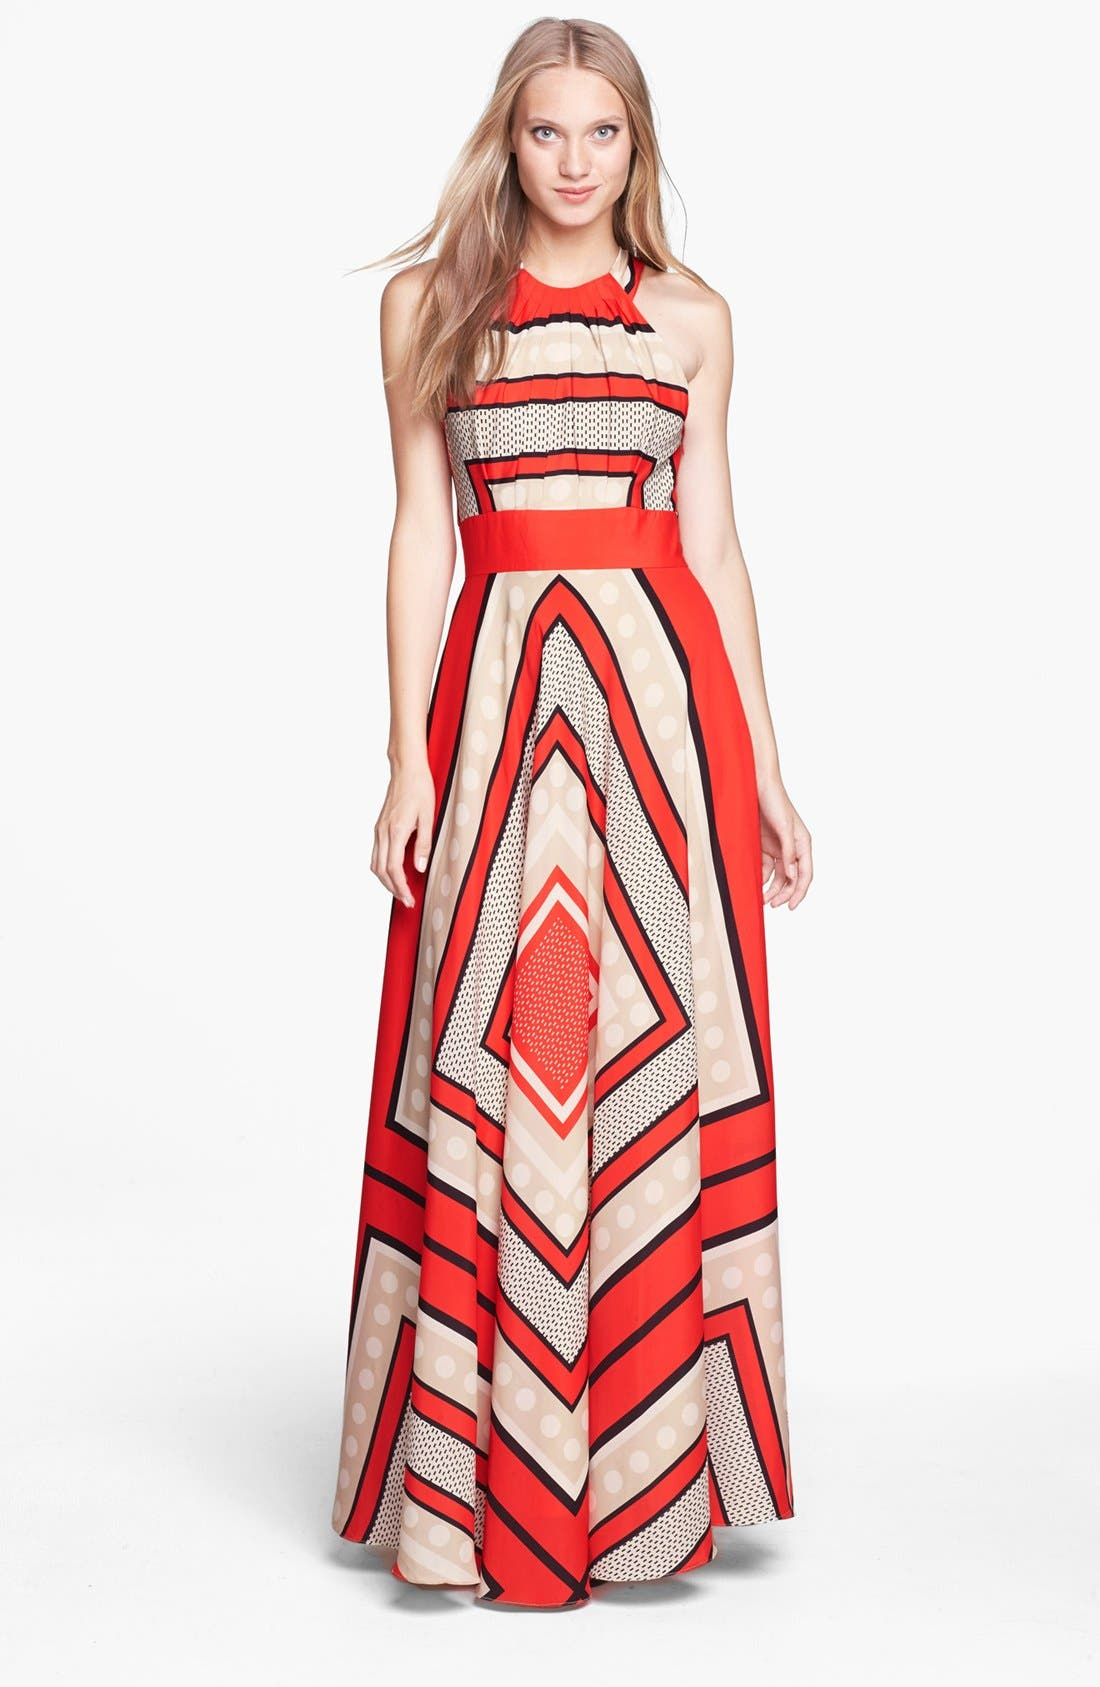 Alternate Image 1 Selected - Eliza J Scarf Print Crêpe de Chine Fit & Flare Maxi Dress (Regular & Petite)